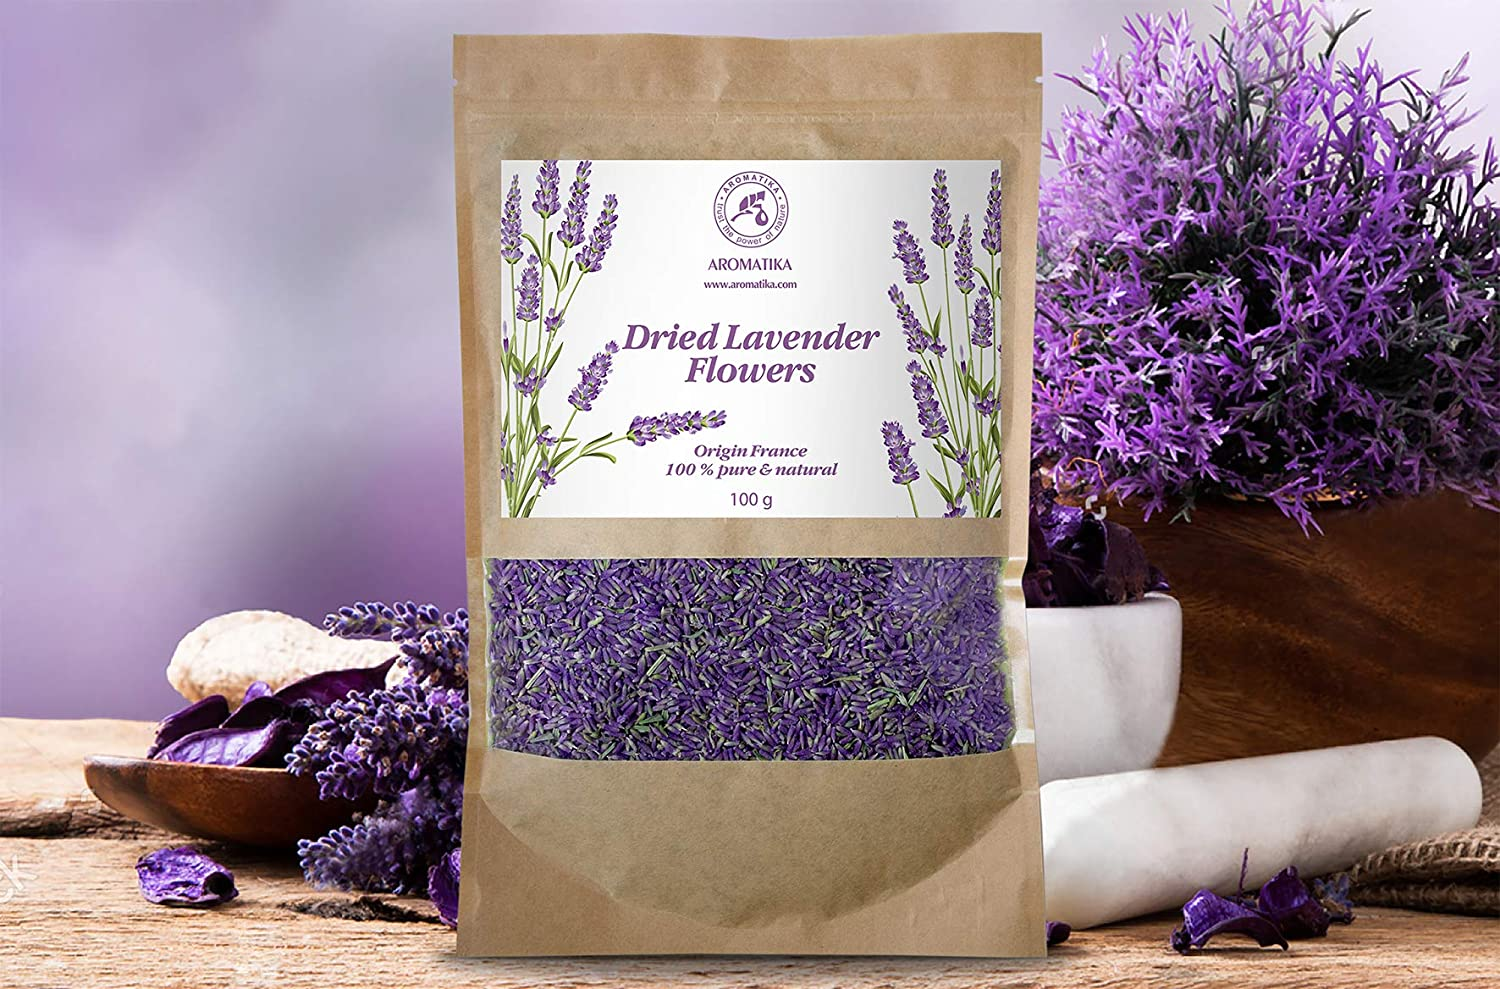 Fragrant Lavender Buds 100 g from French Provence - 100% Pure Natural - Lavanda Flowers - Lavender Blossom - Best Lavender Odor - Dried Lavender Flowers by Aromatika